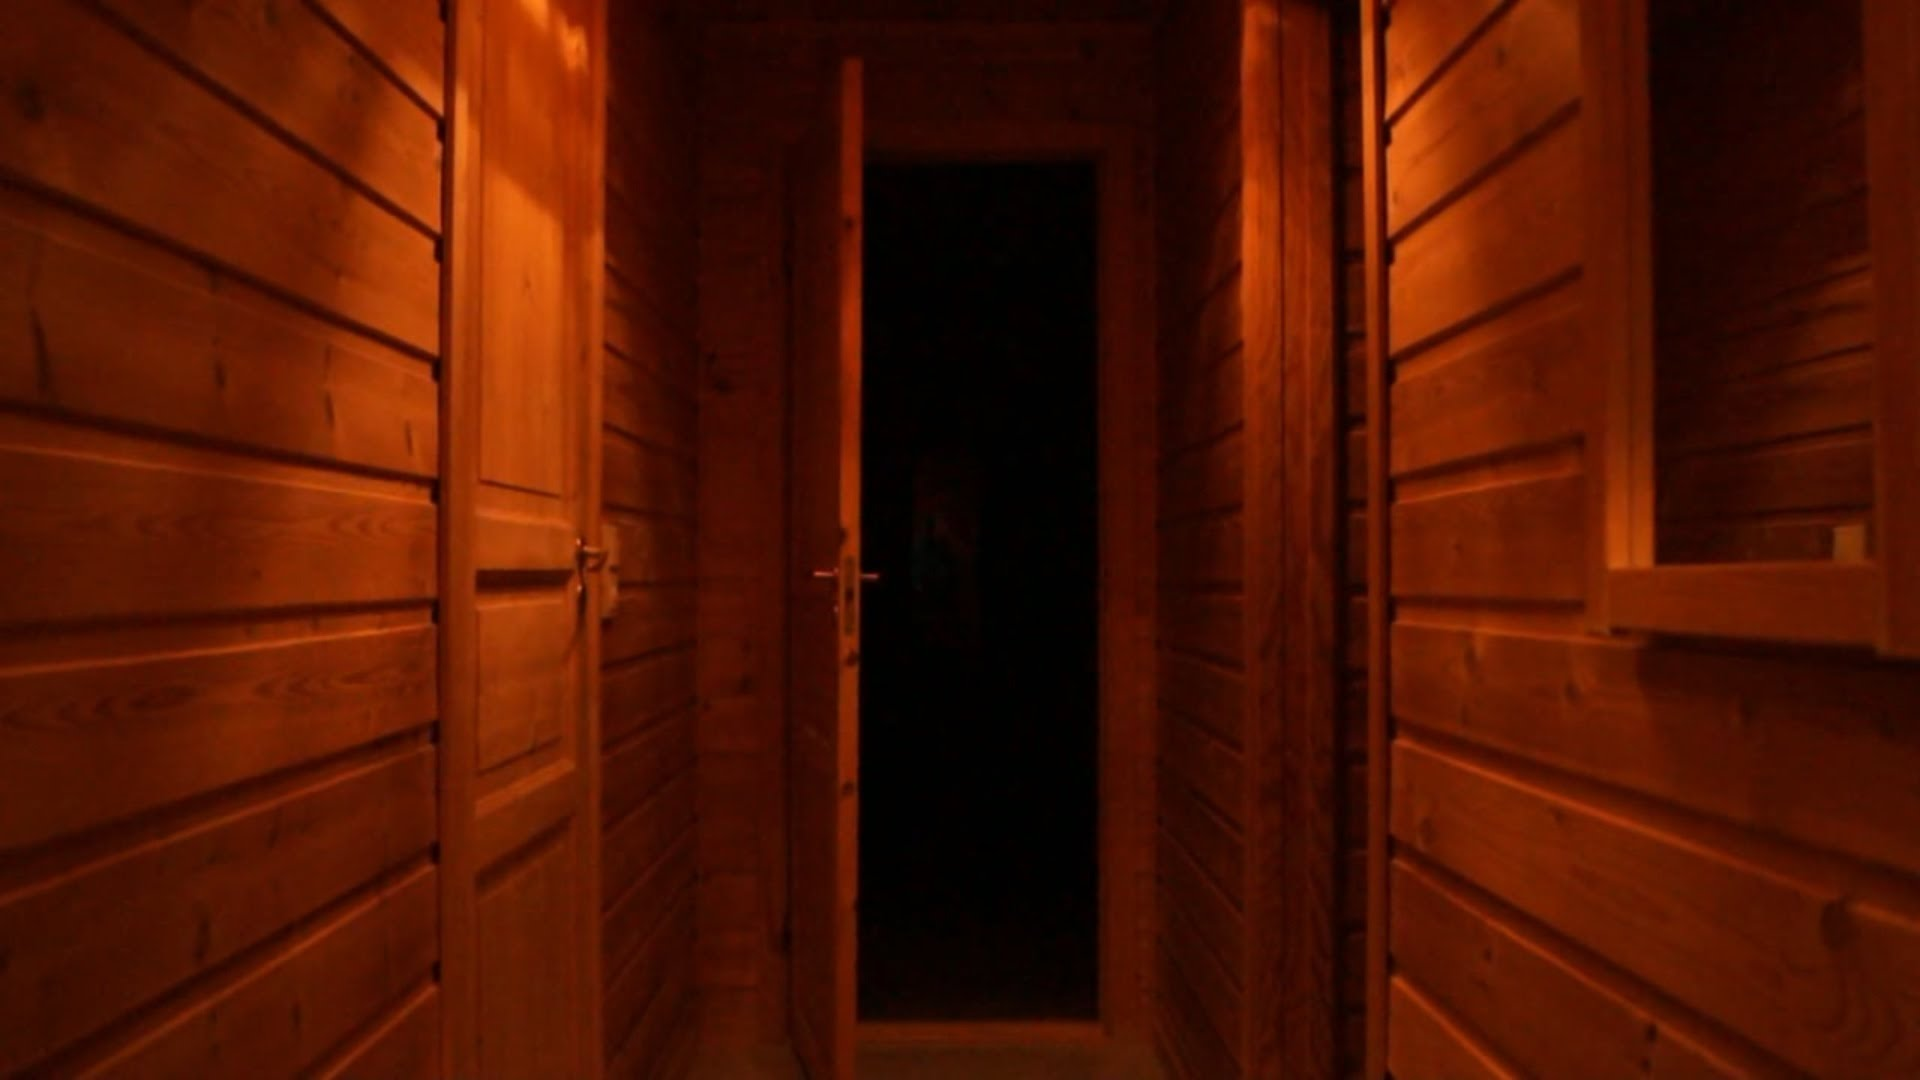 Doors to horror photo